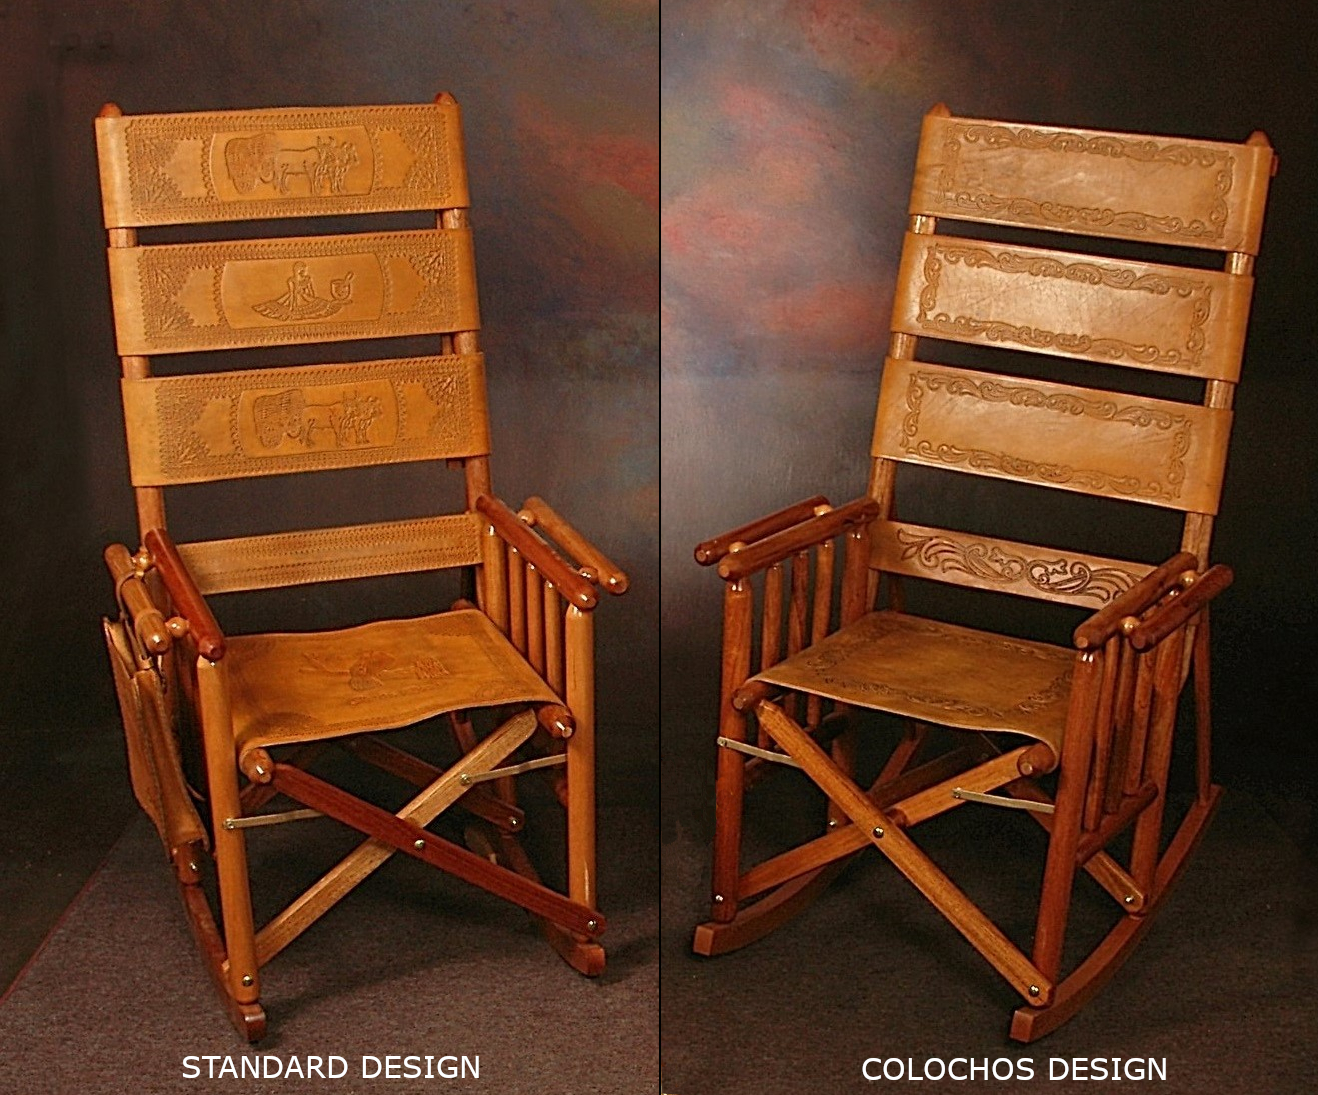 High Back Costa Rica Rocking Chair - Colochos Design